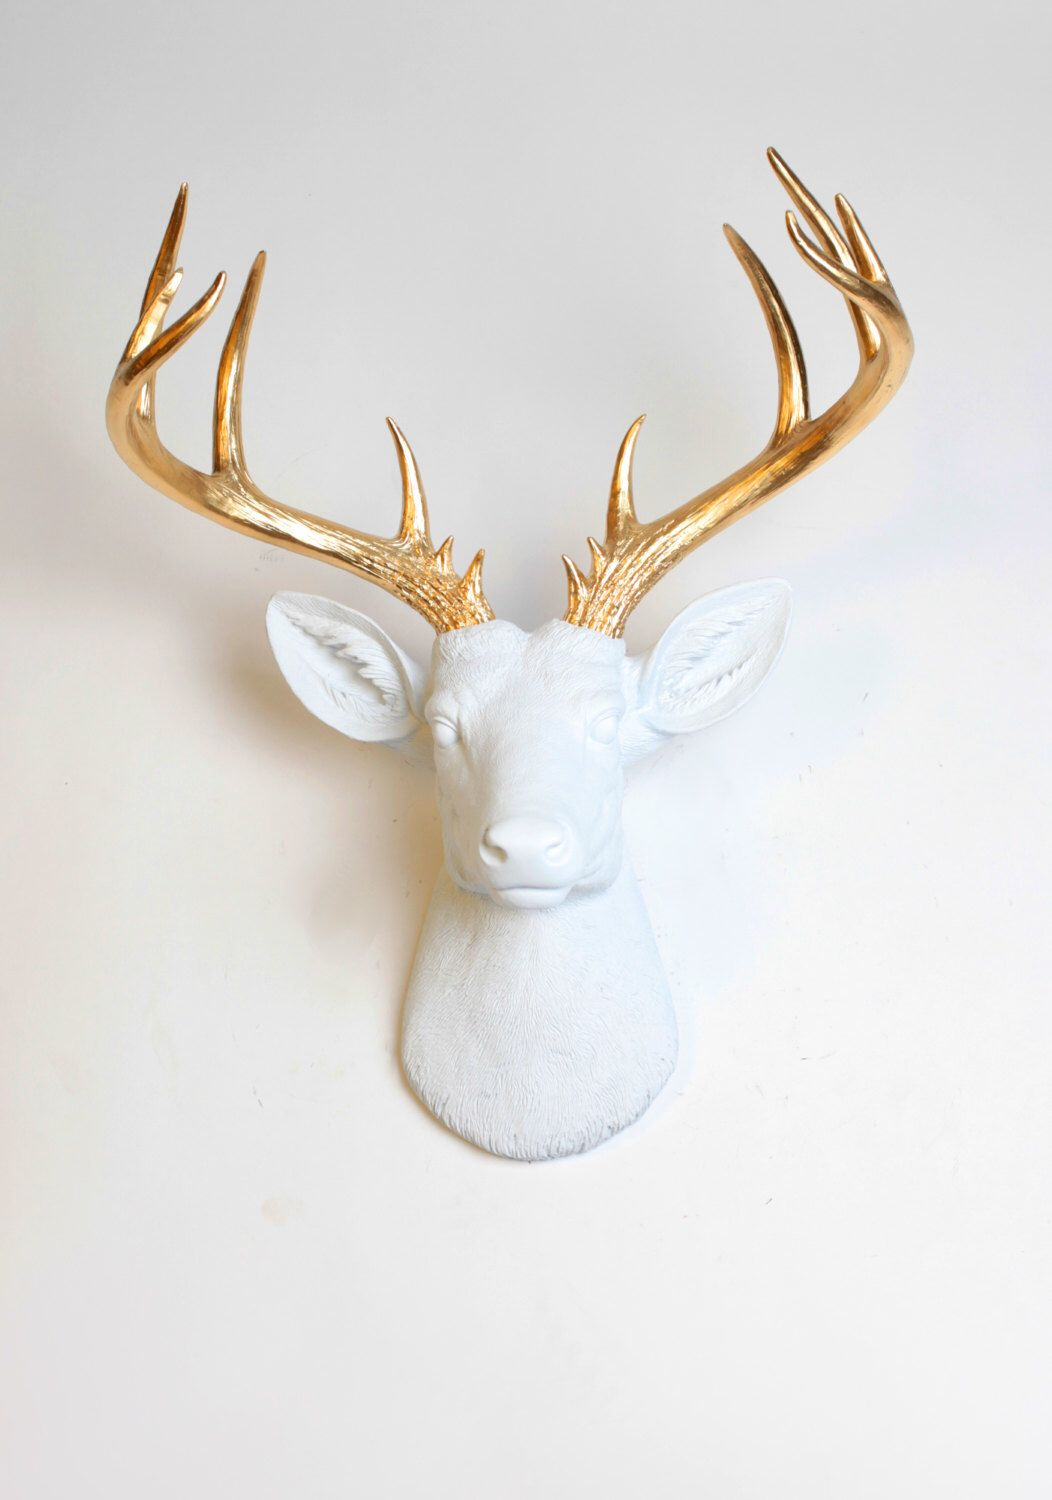 Deer Head Wall Mount Decor – The Xl Alfred – White And Gold For Large Deer Head Faux Taxidermy Wall Decor (Gallery 6 of 30)